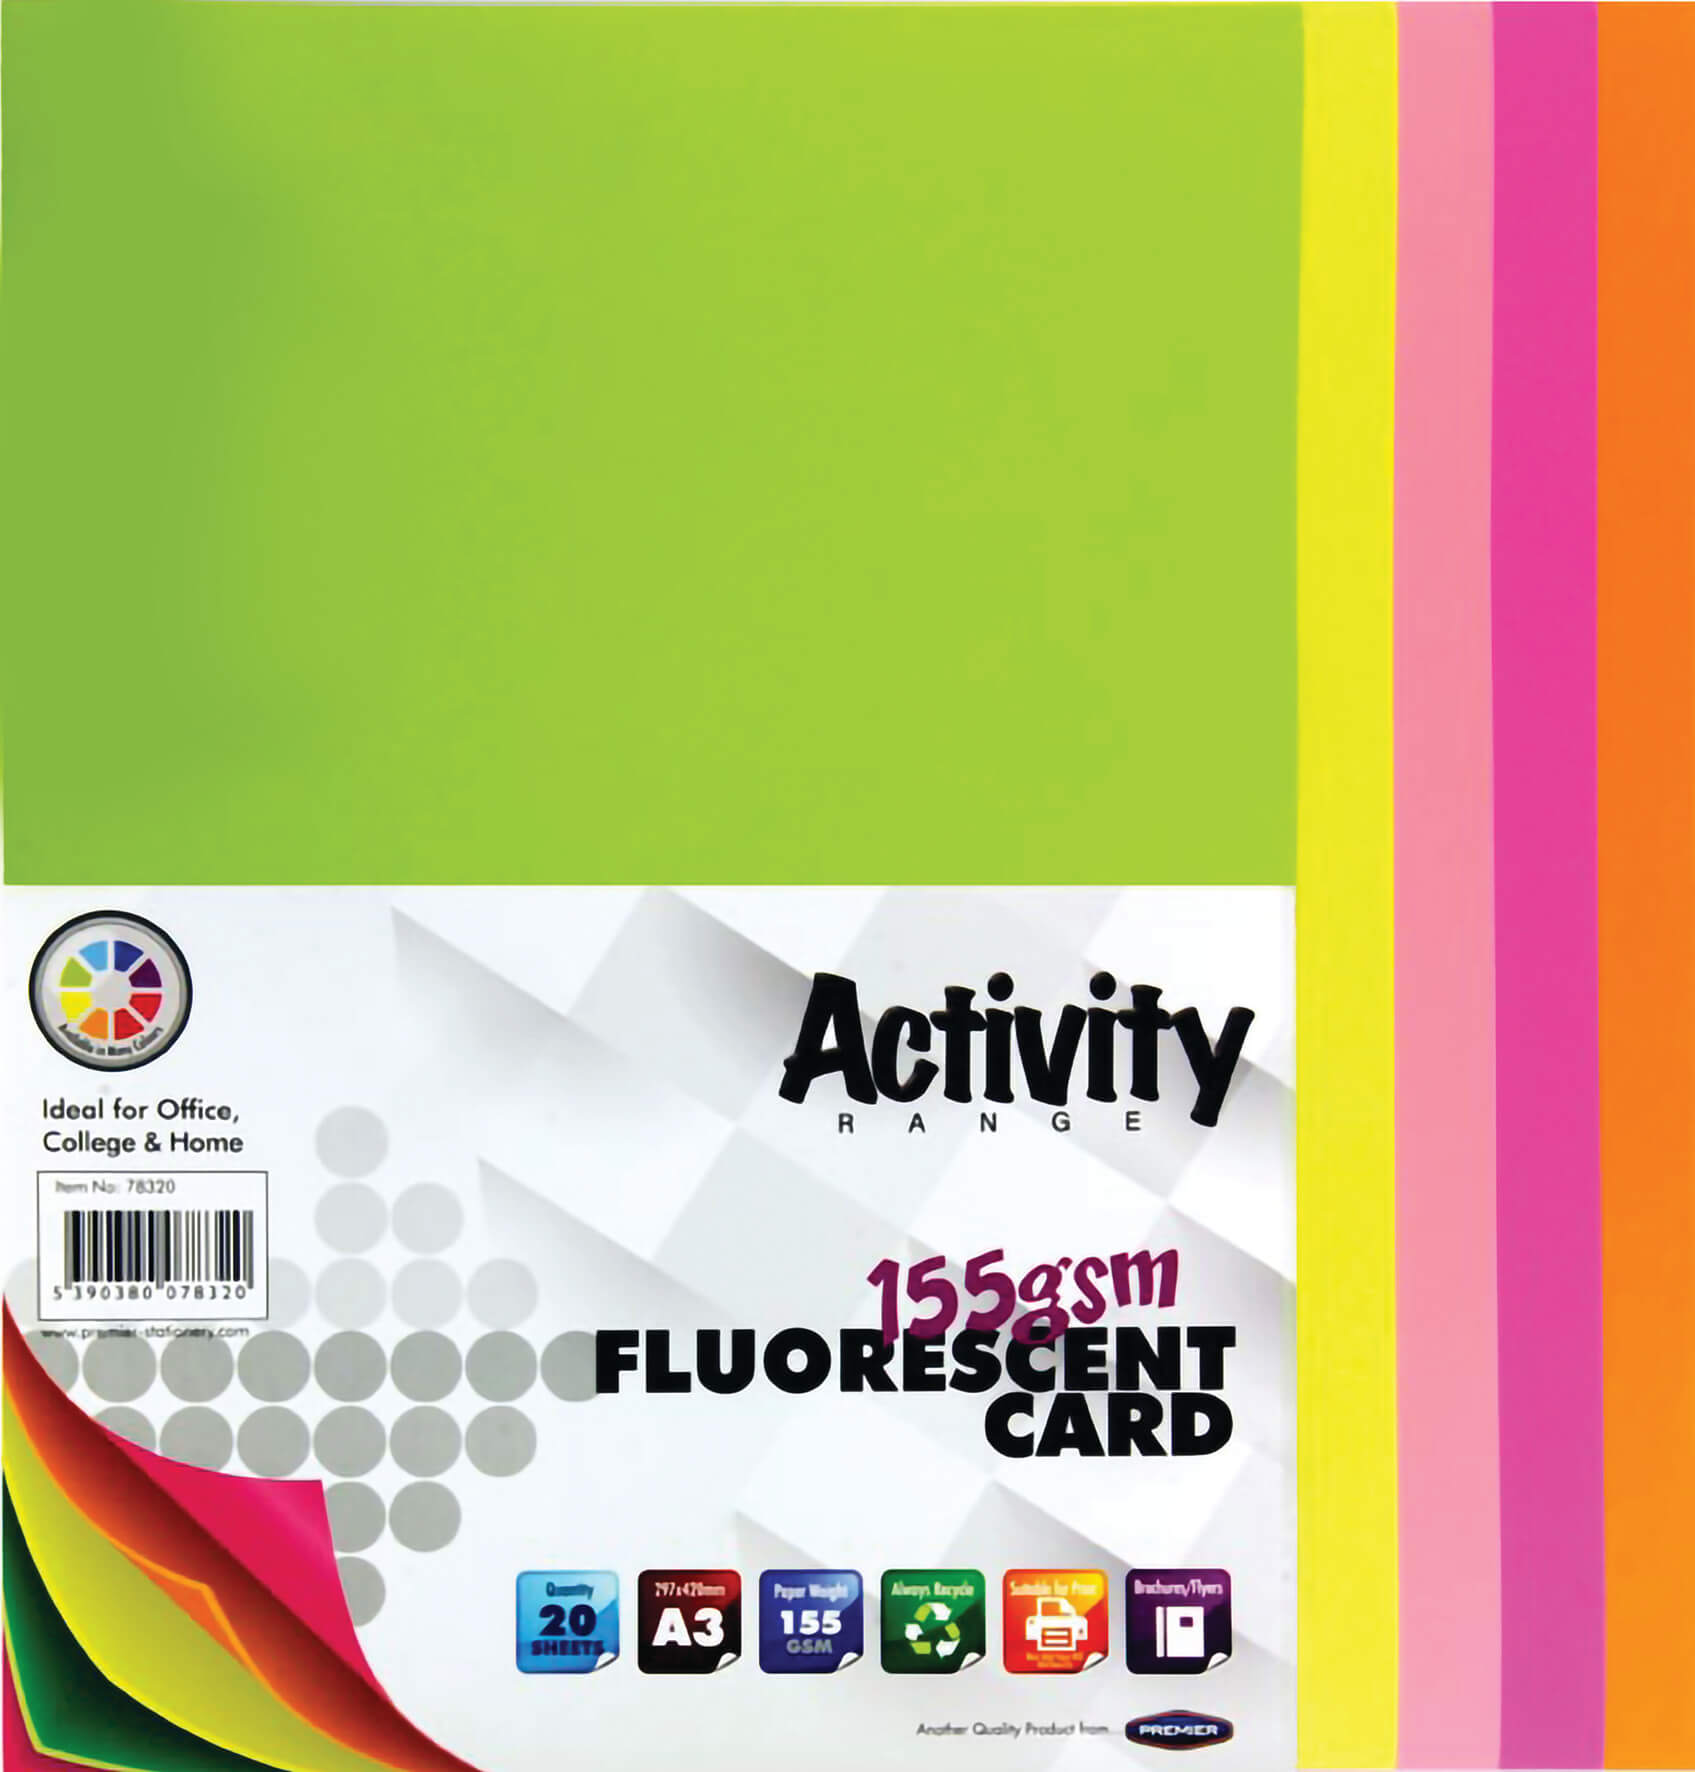 Card Fluorescent A3 155gsm - 20 Sheets